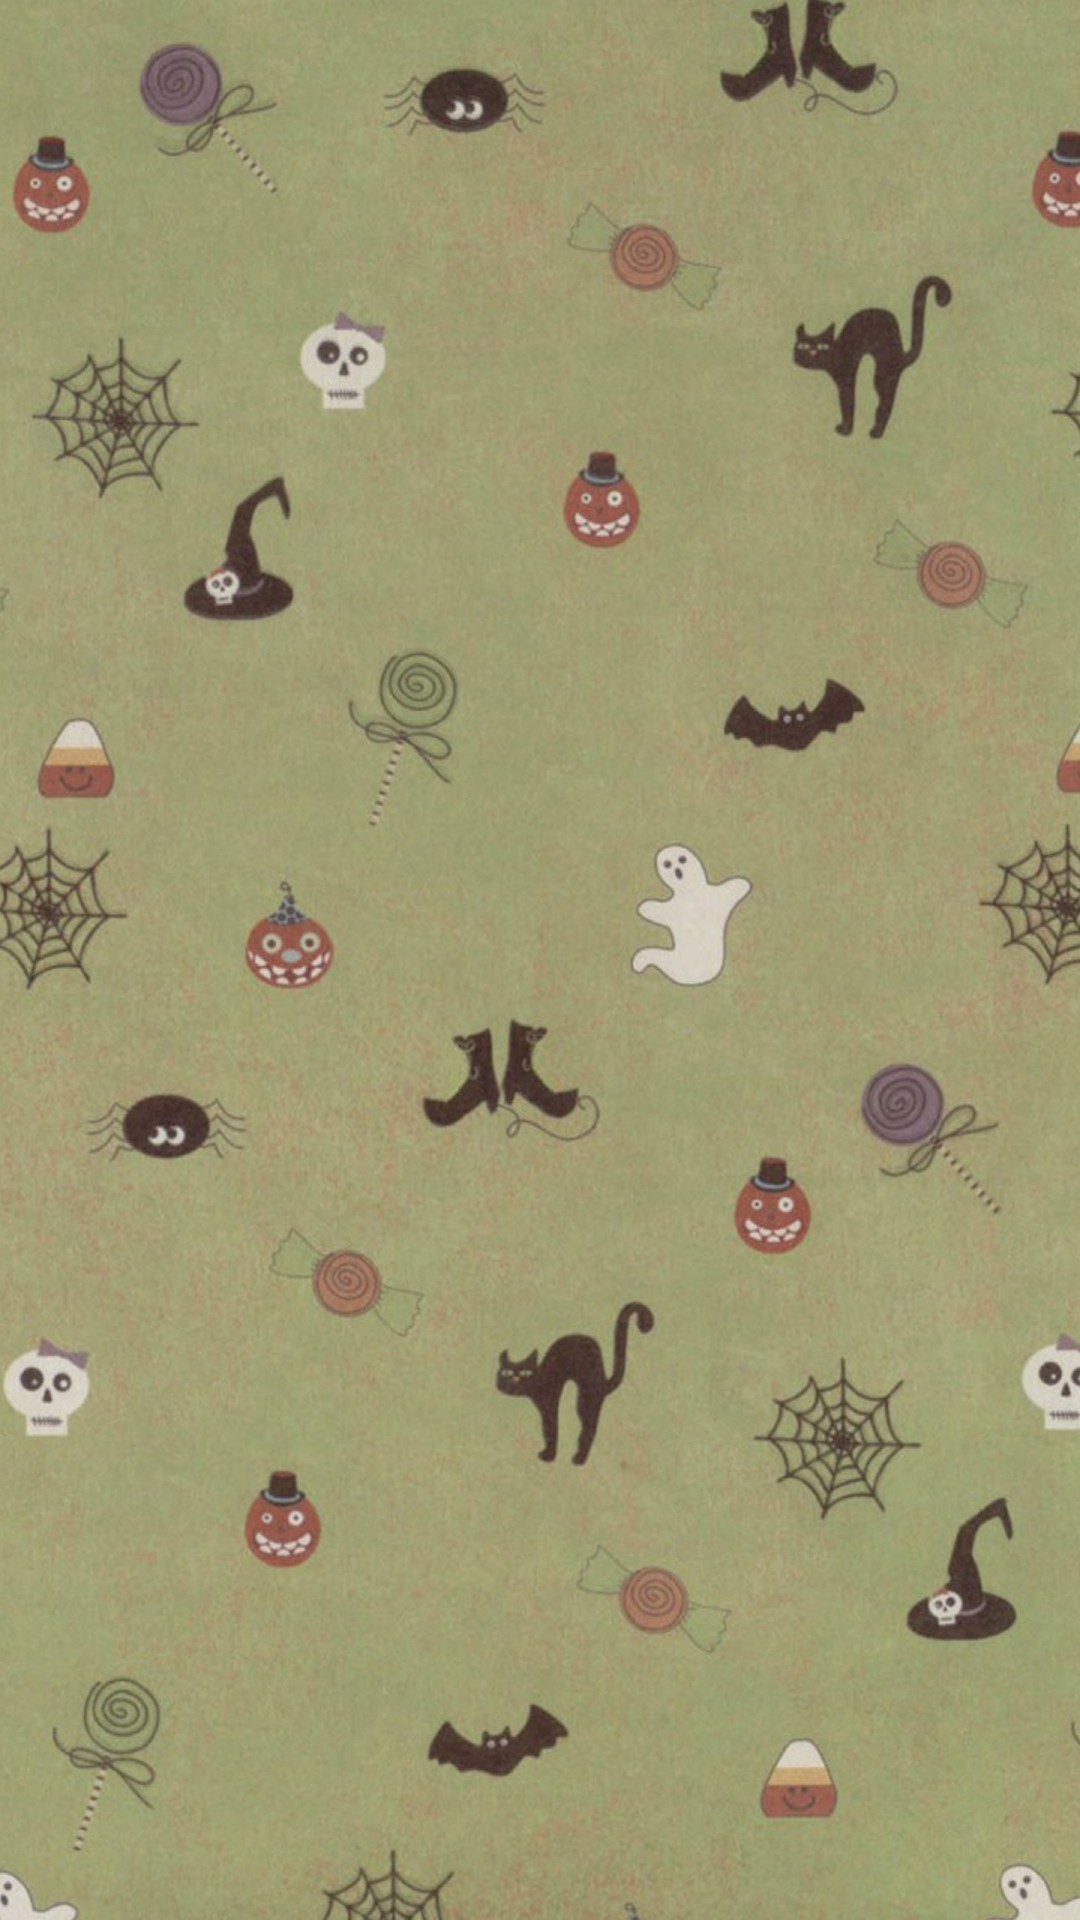 Beautiful Wallpaper Halloween Iphone 6s Plus - cute-halloween-pattern-wallpaper-wallpaper-background-1080x1920  Photograph_613495.jpg